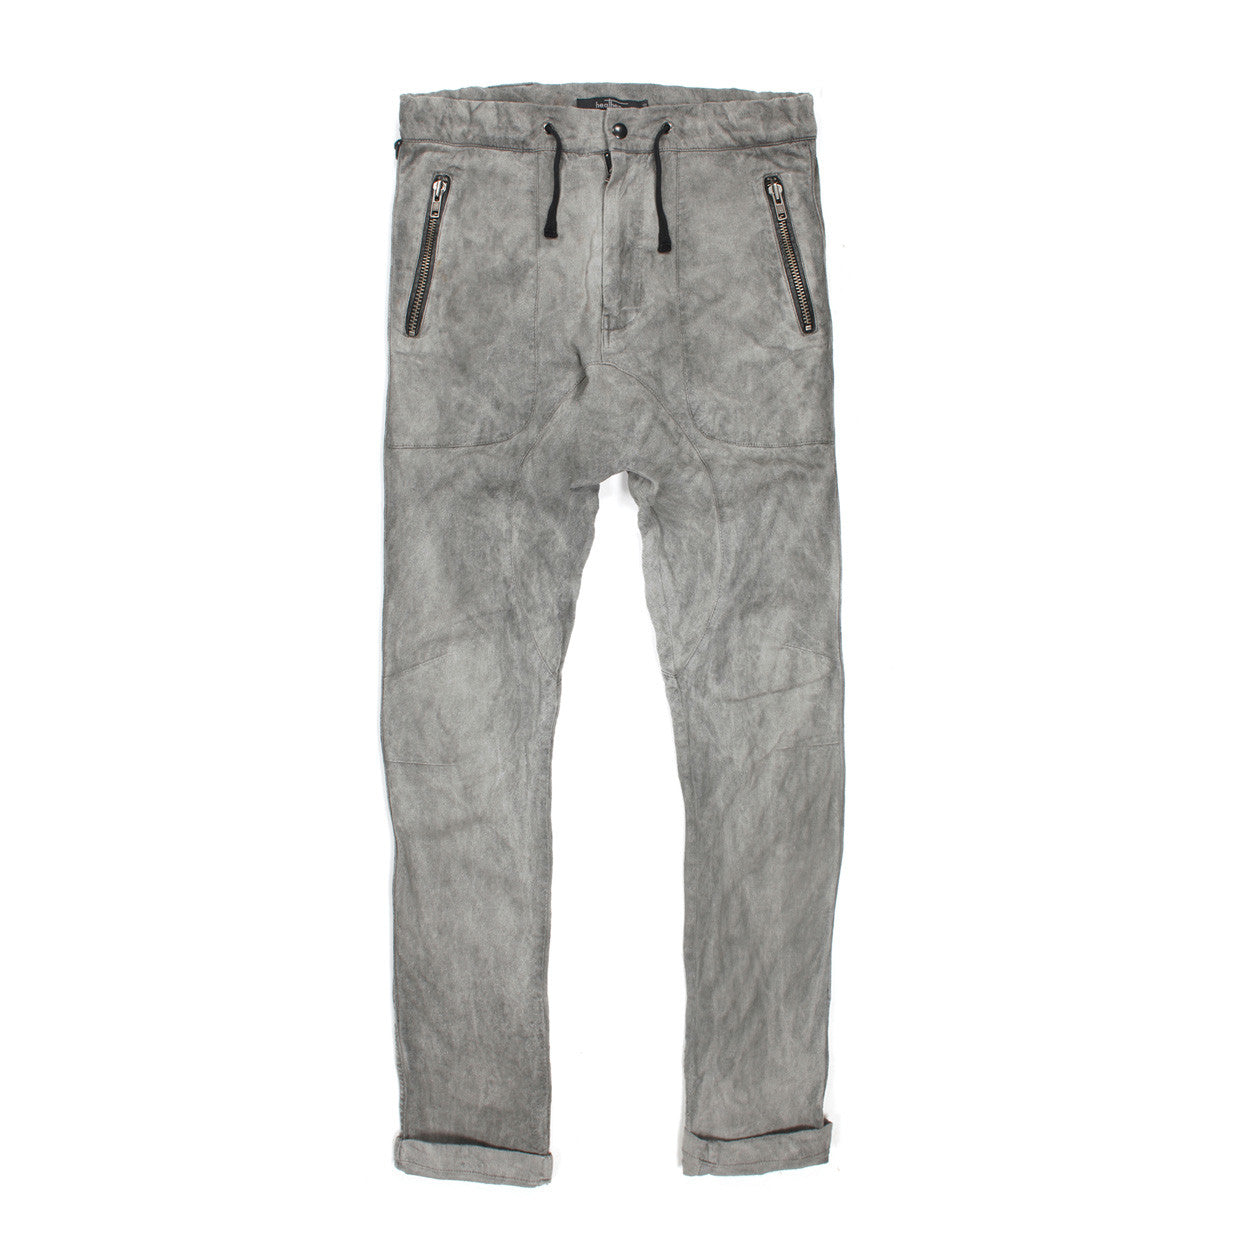 Heathen Continuum Pants - Grey